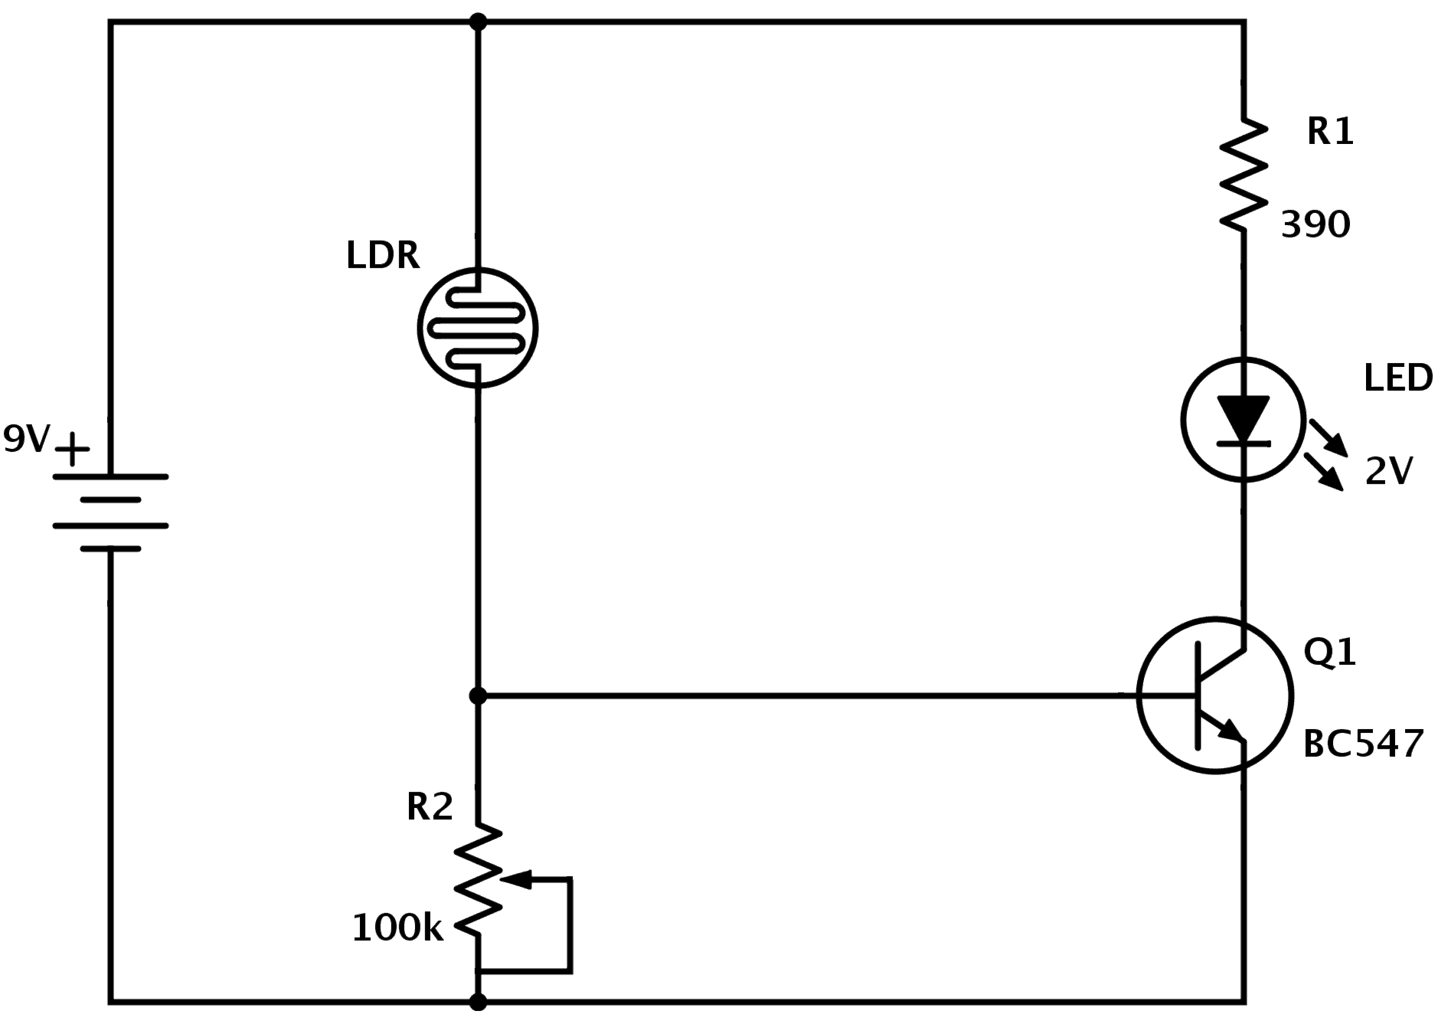 LDR circuit improved circuit diagram how to read and understand any schematic simple circuit diagram at mifinder.co